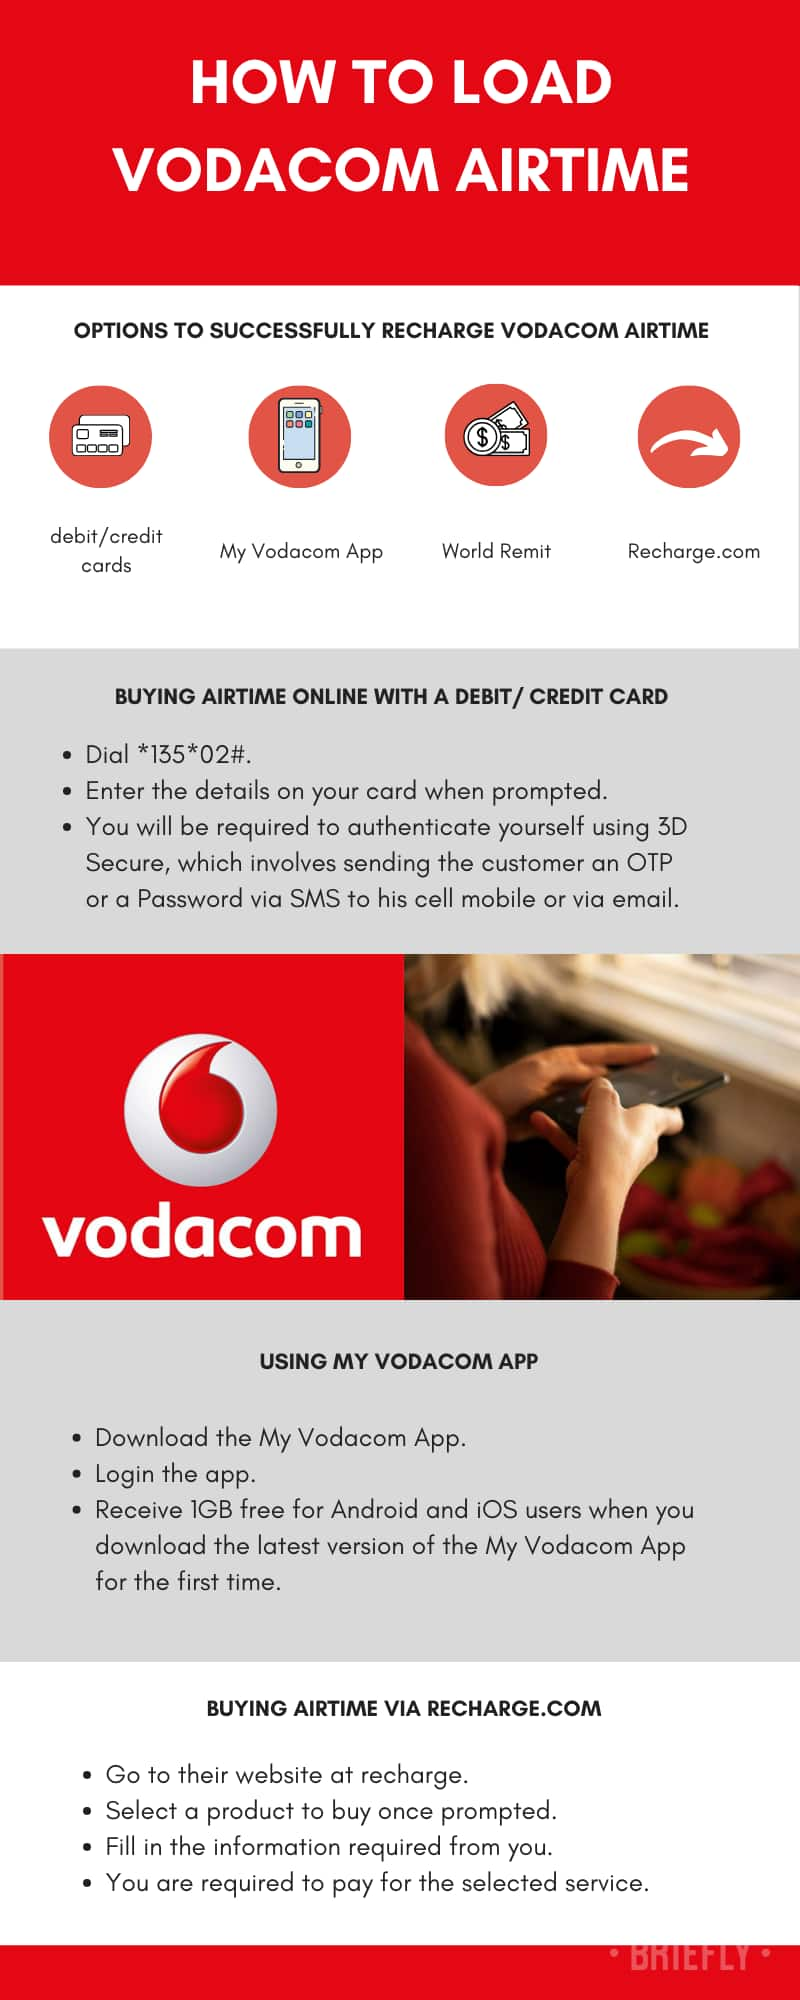 How to load Vodacom airtime